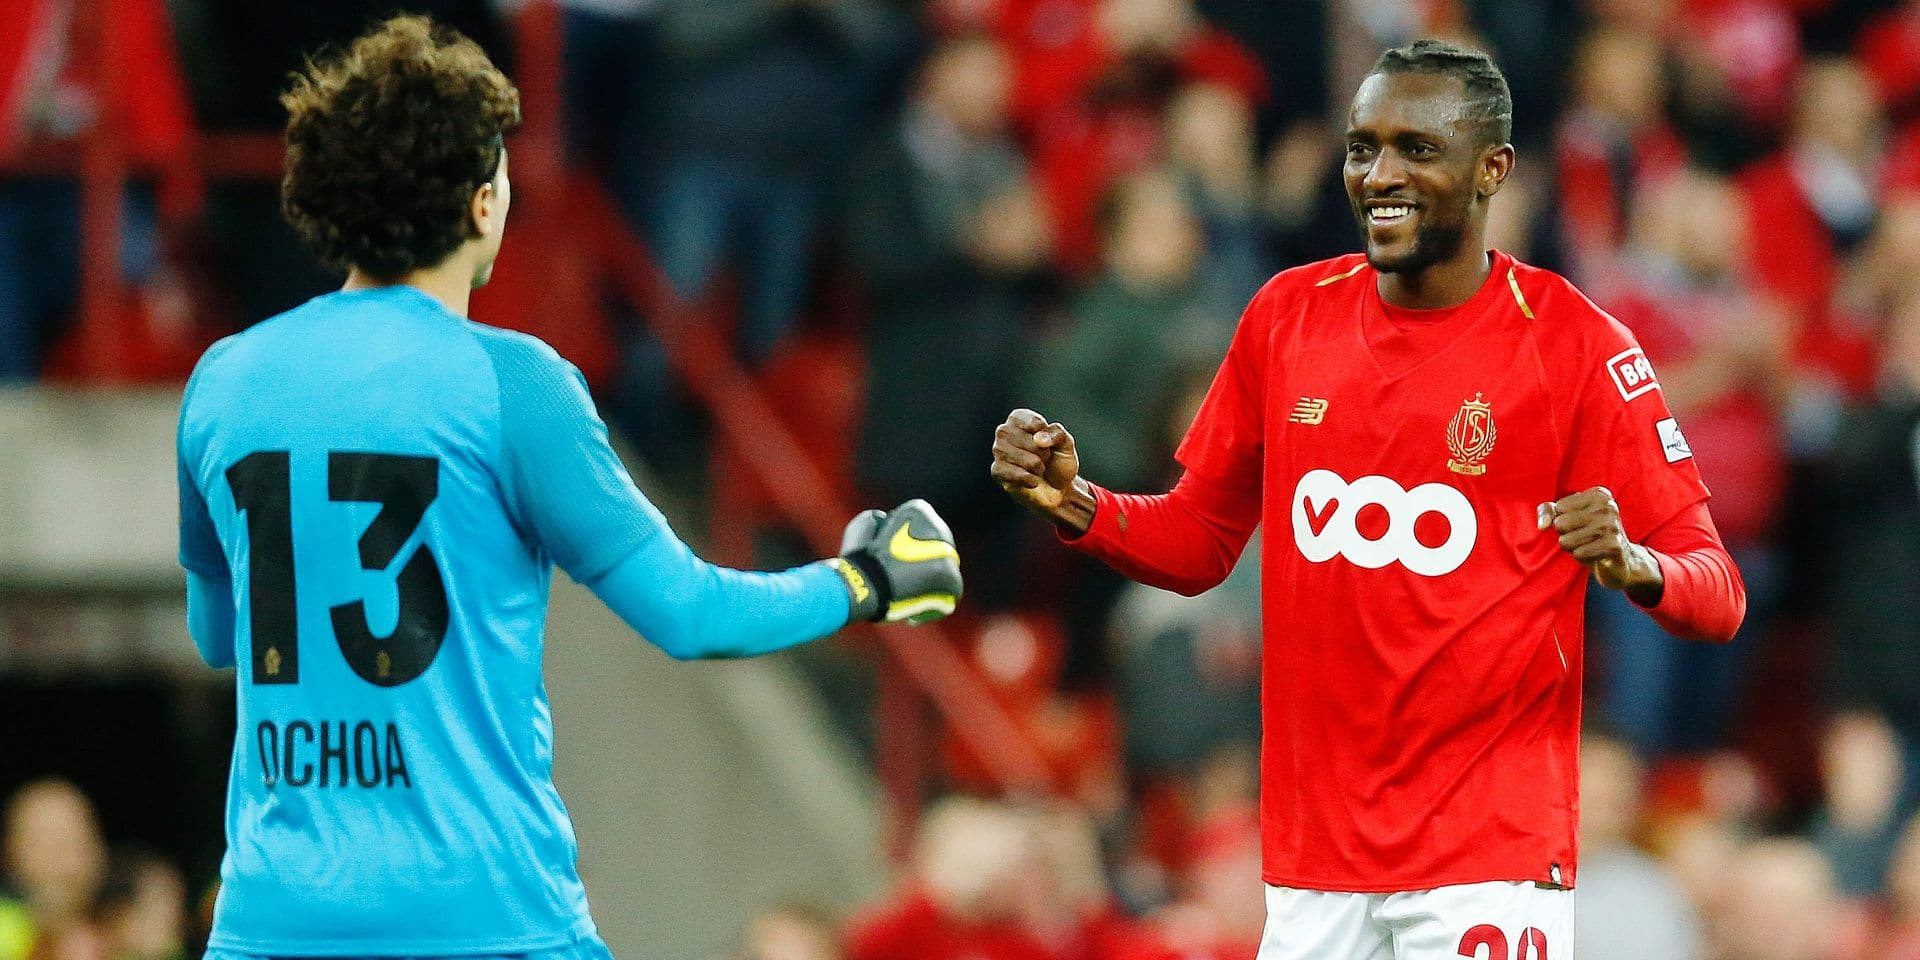 Standard's goalkeeper Guillermo Ochoa and Standard's Merveille Bope Bokadi celebrate after winning a soccer game between Standard de Liege and Royal Antwerp FC, Friday 29 March 2019 in Liege, on day 1 (out of 10) of the Play-off 1 of the 'Jupiler Pro League' Belgian soccer championship. BELGA PHOTO BRUNO FAHY